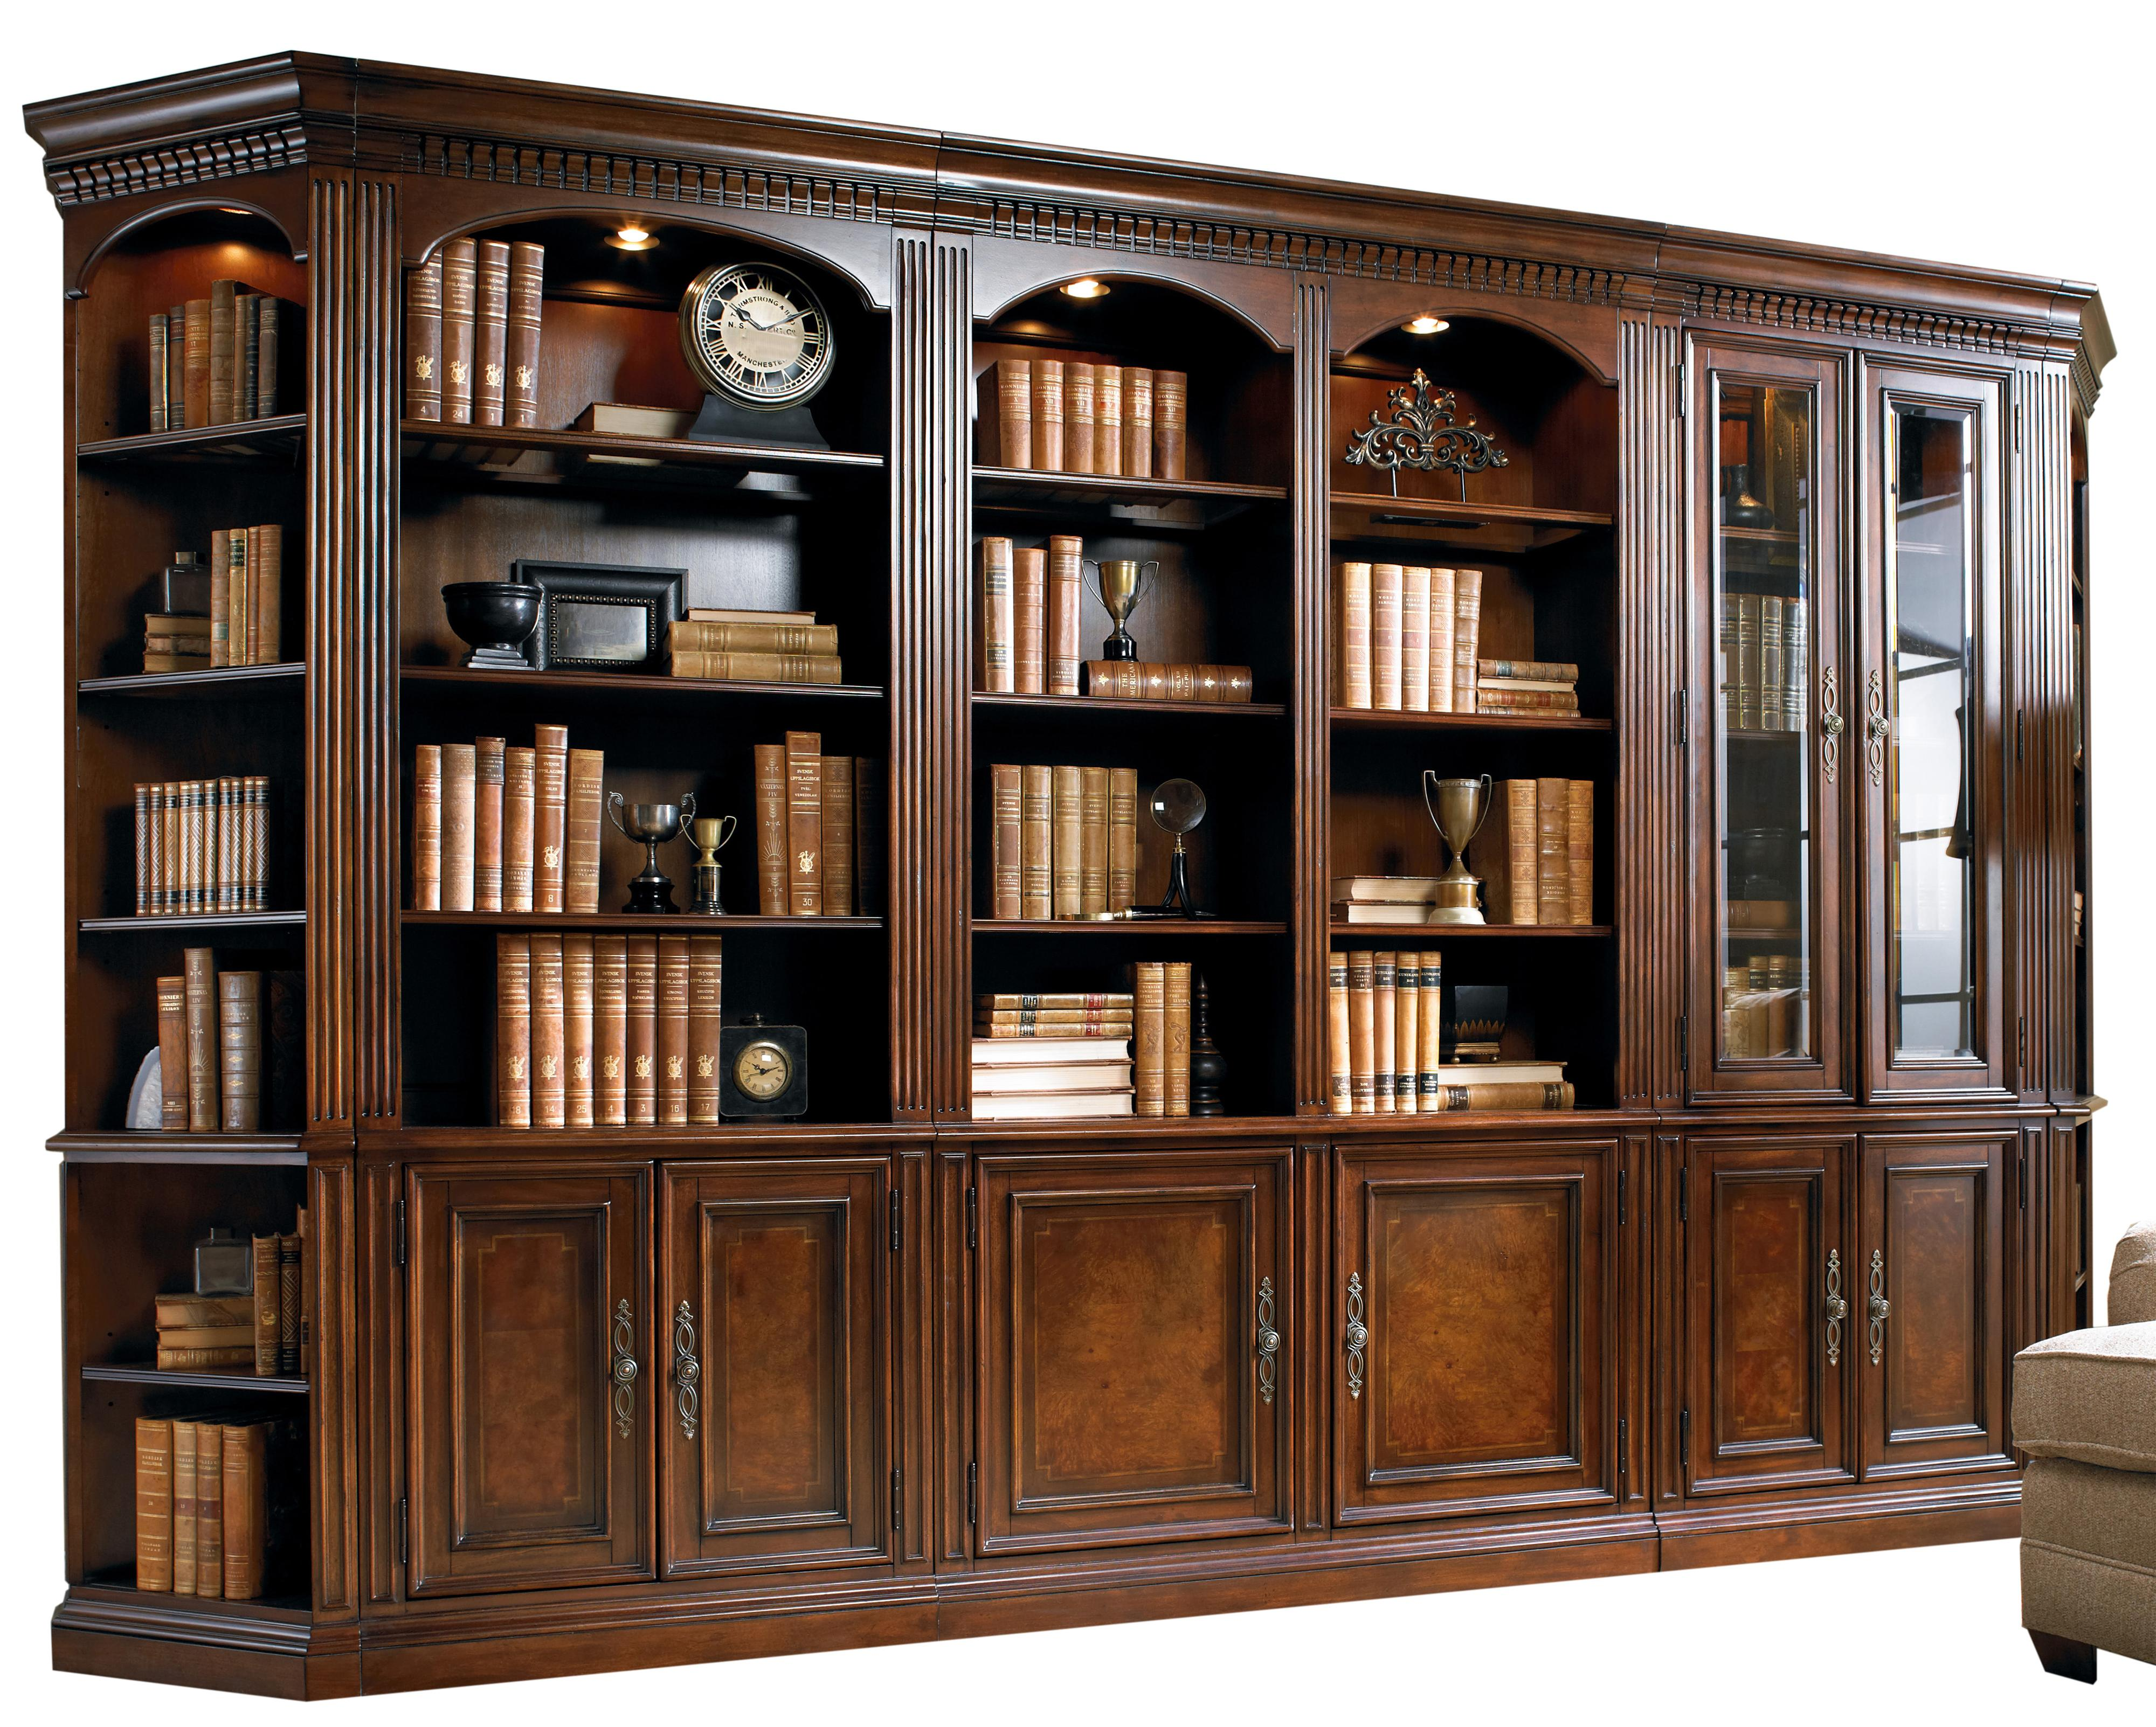 wall unit lighting. Five-Piece Library Wall Unit Lighting